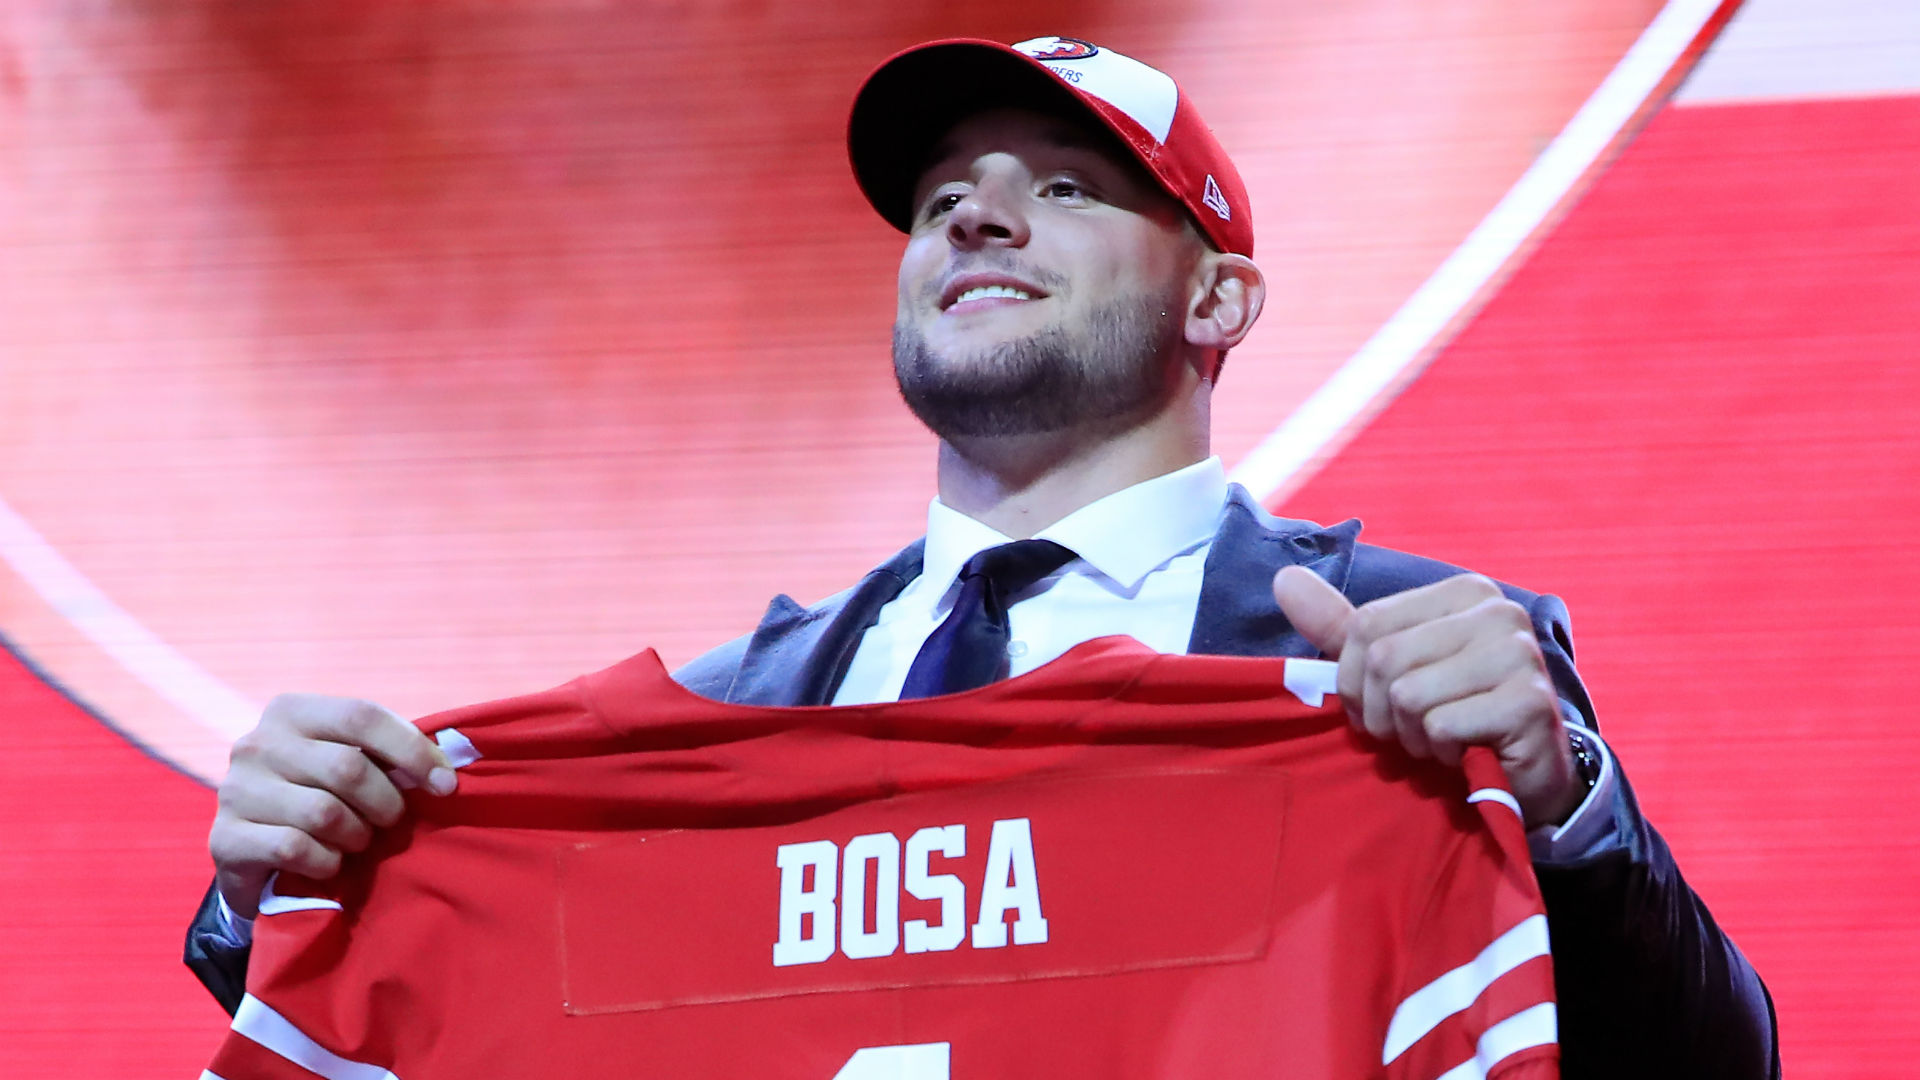 NFL Draft 2019: Nick Bosa says he was 'a little insensitive' about past social media comments